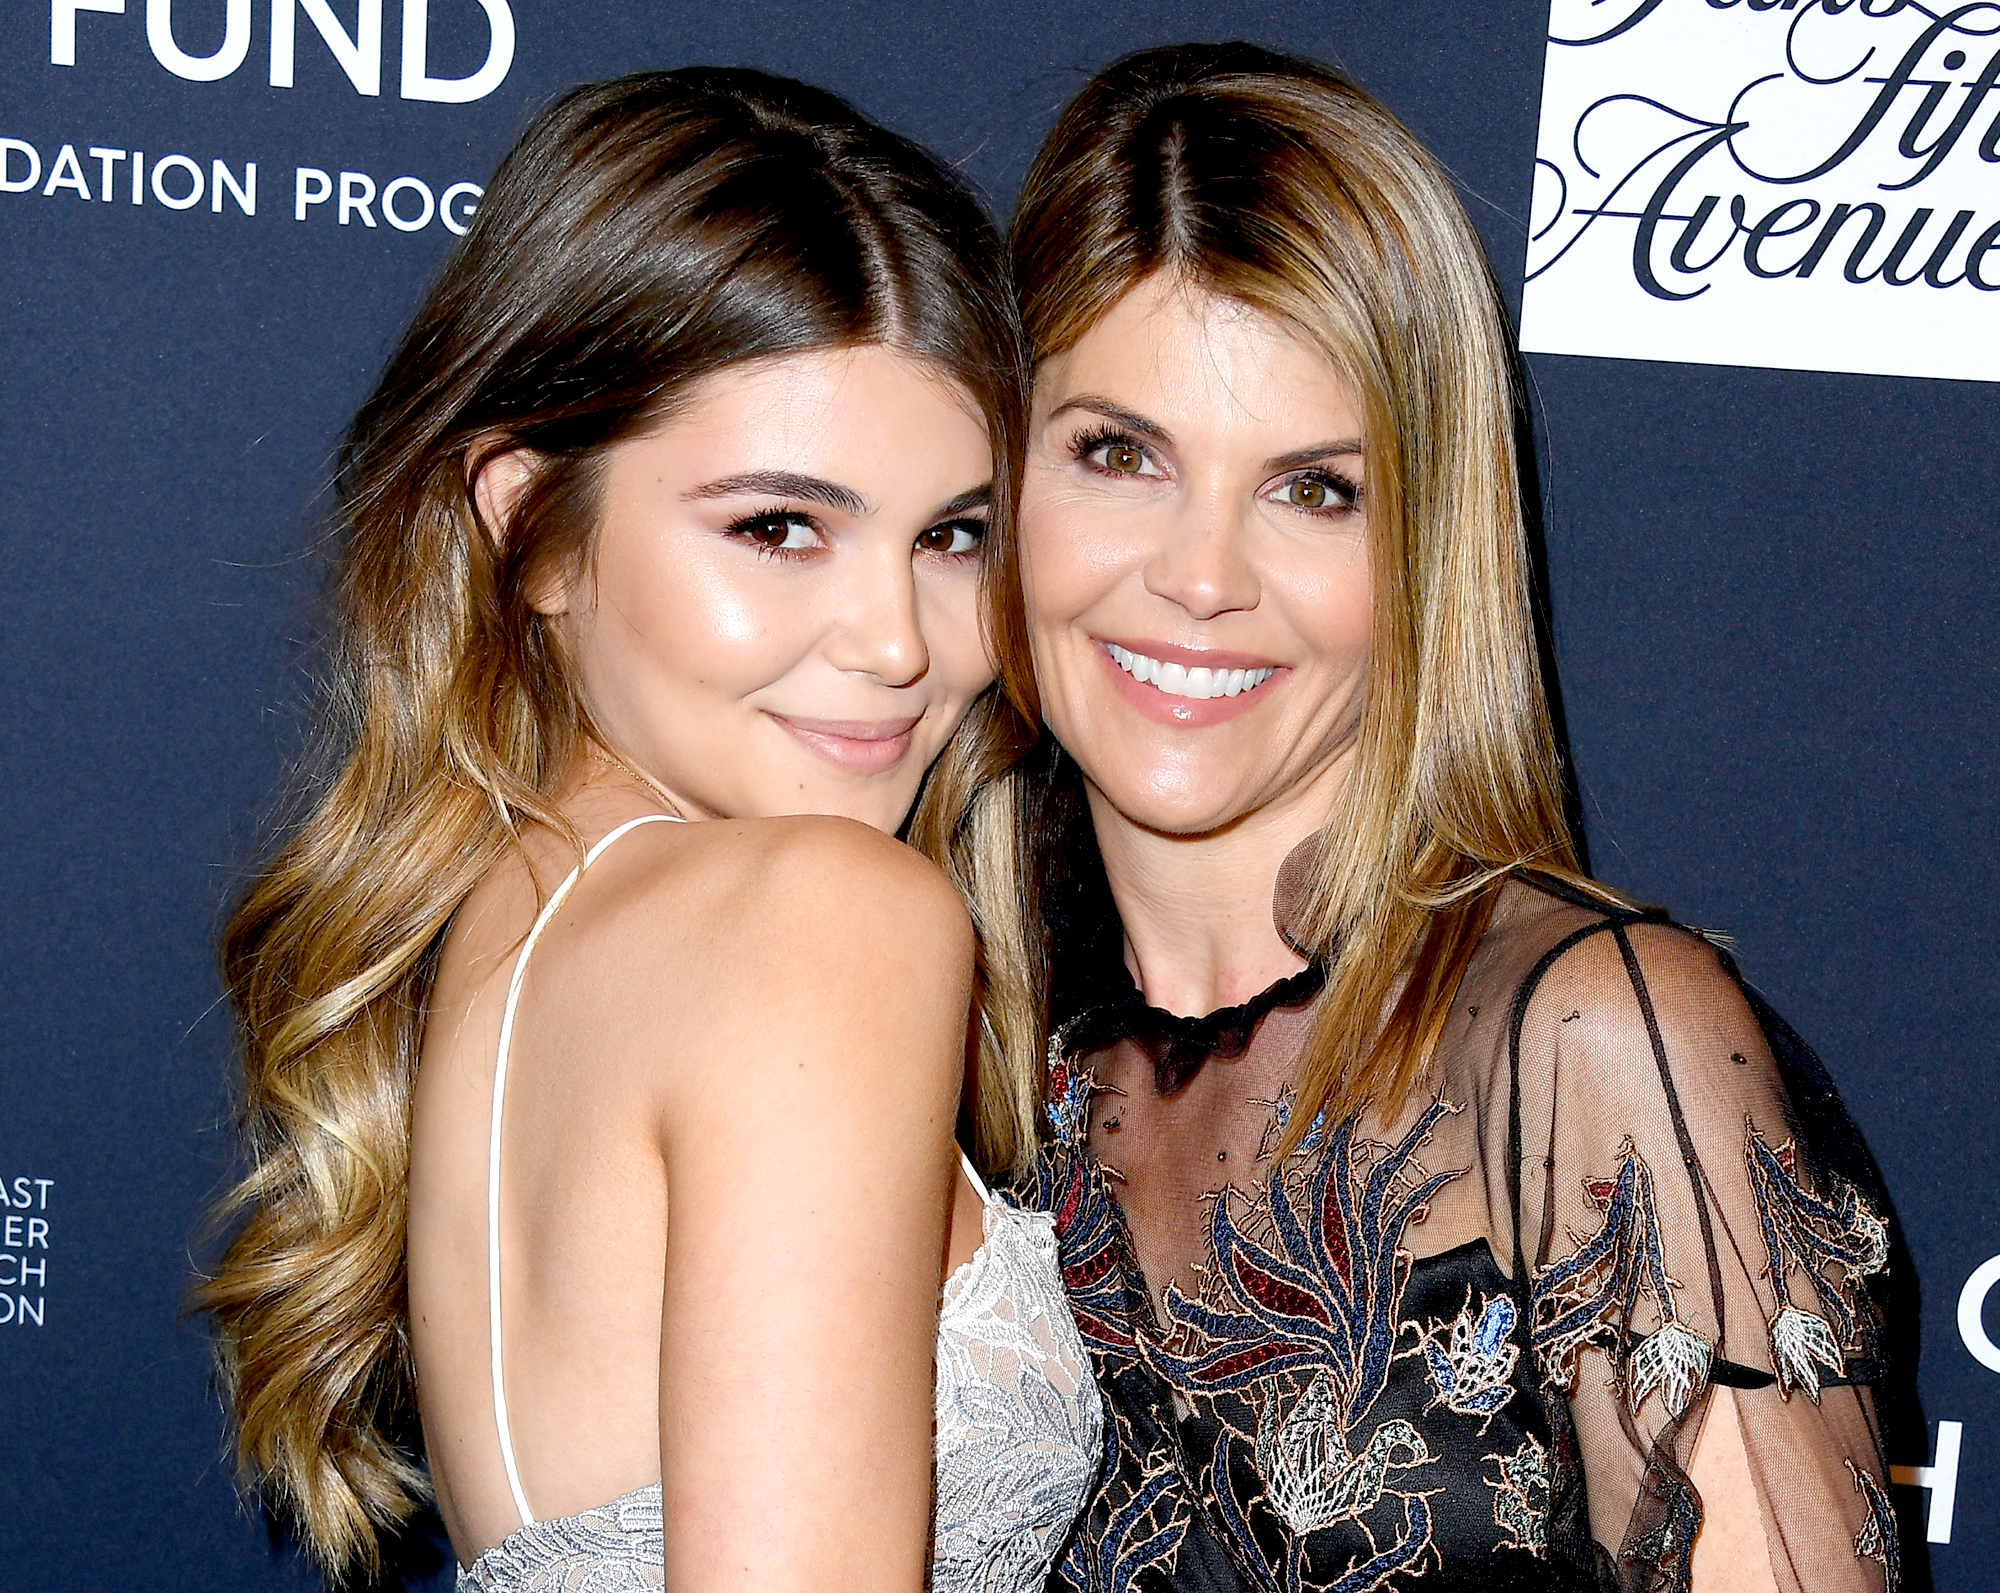 Lori-Loughlin's-Daughter-Olivia-Jade-Found-It-'Fun'-and-'Exciting'-When-She-Was-Mobbed-by-Fans-at-USC-2